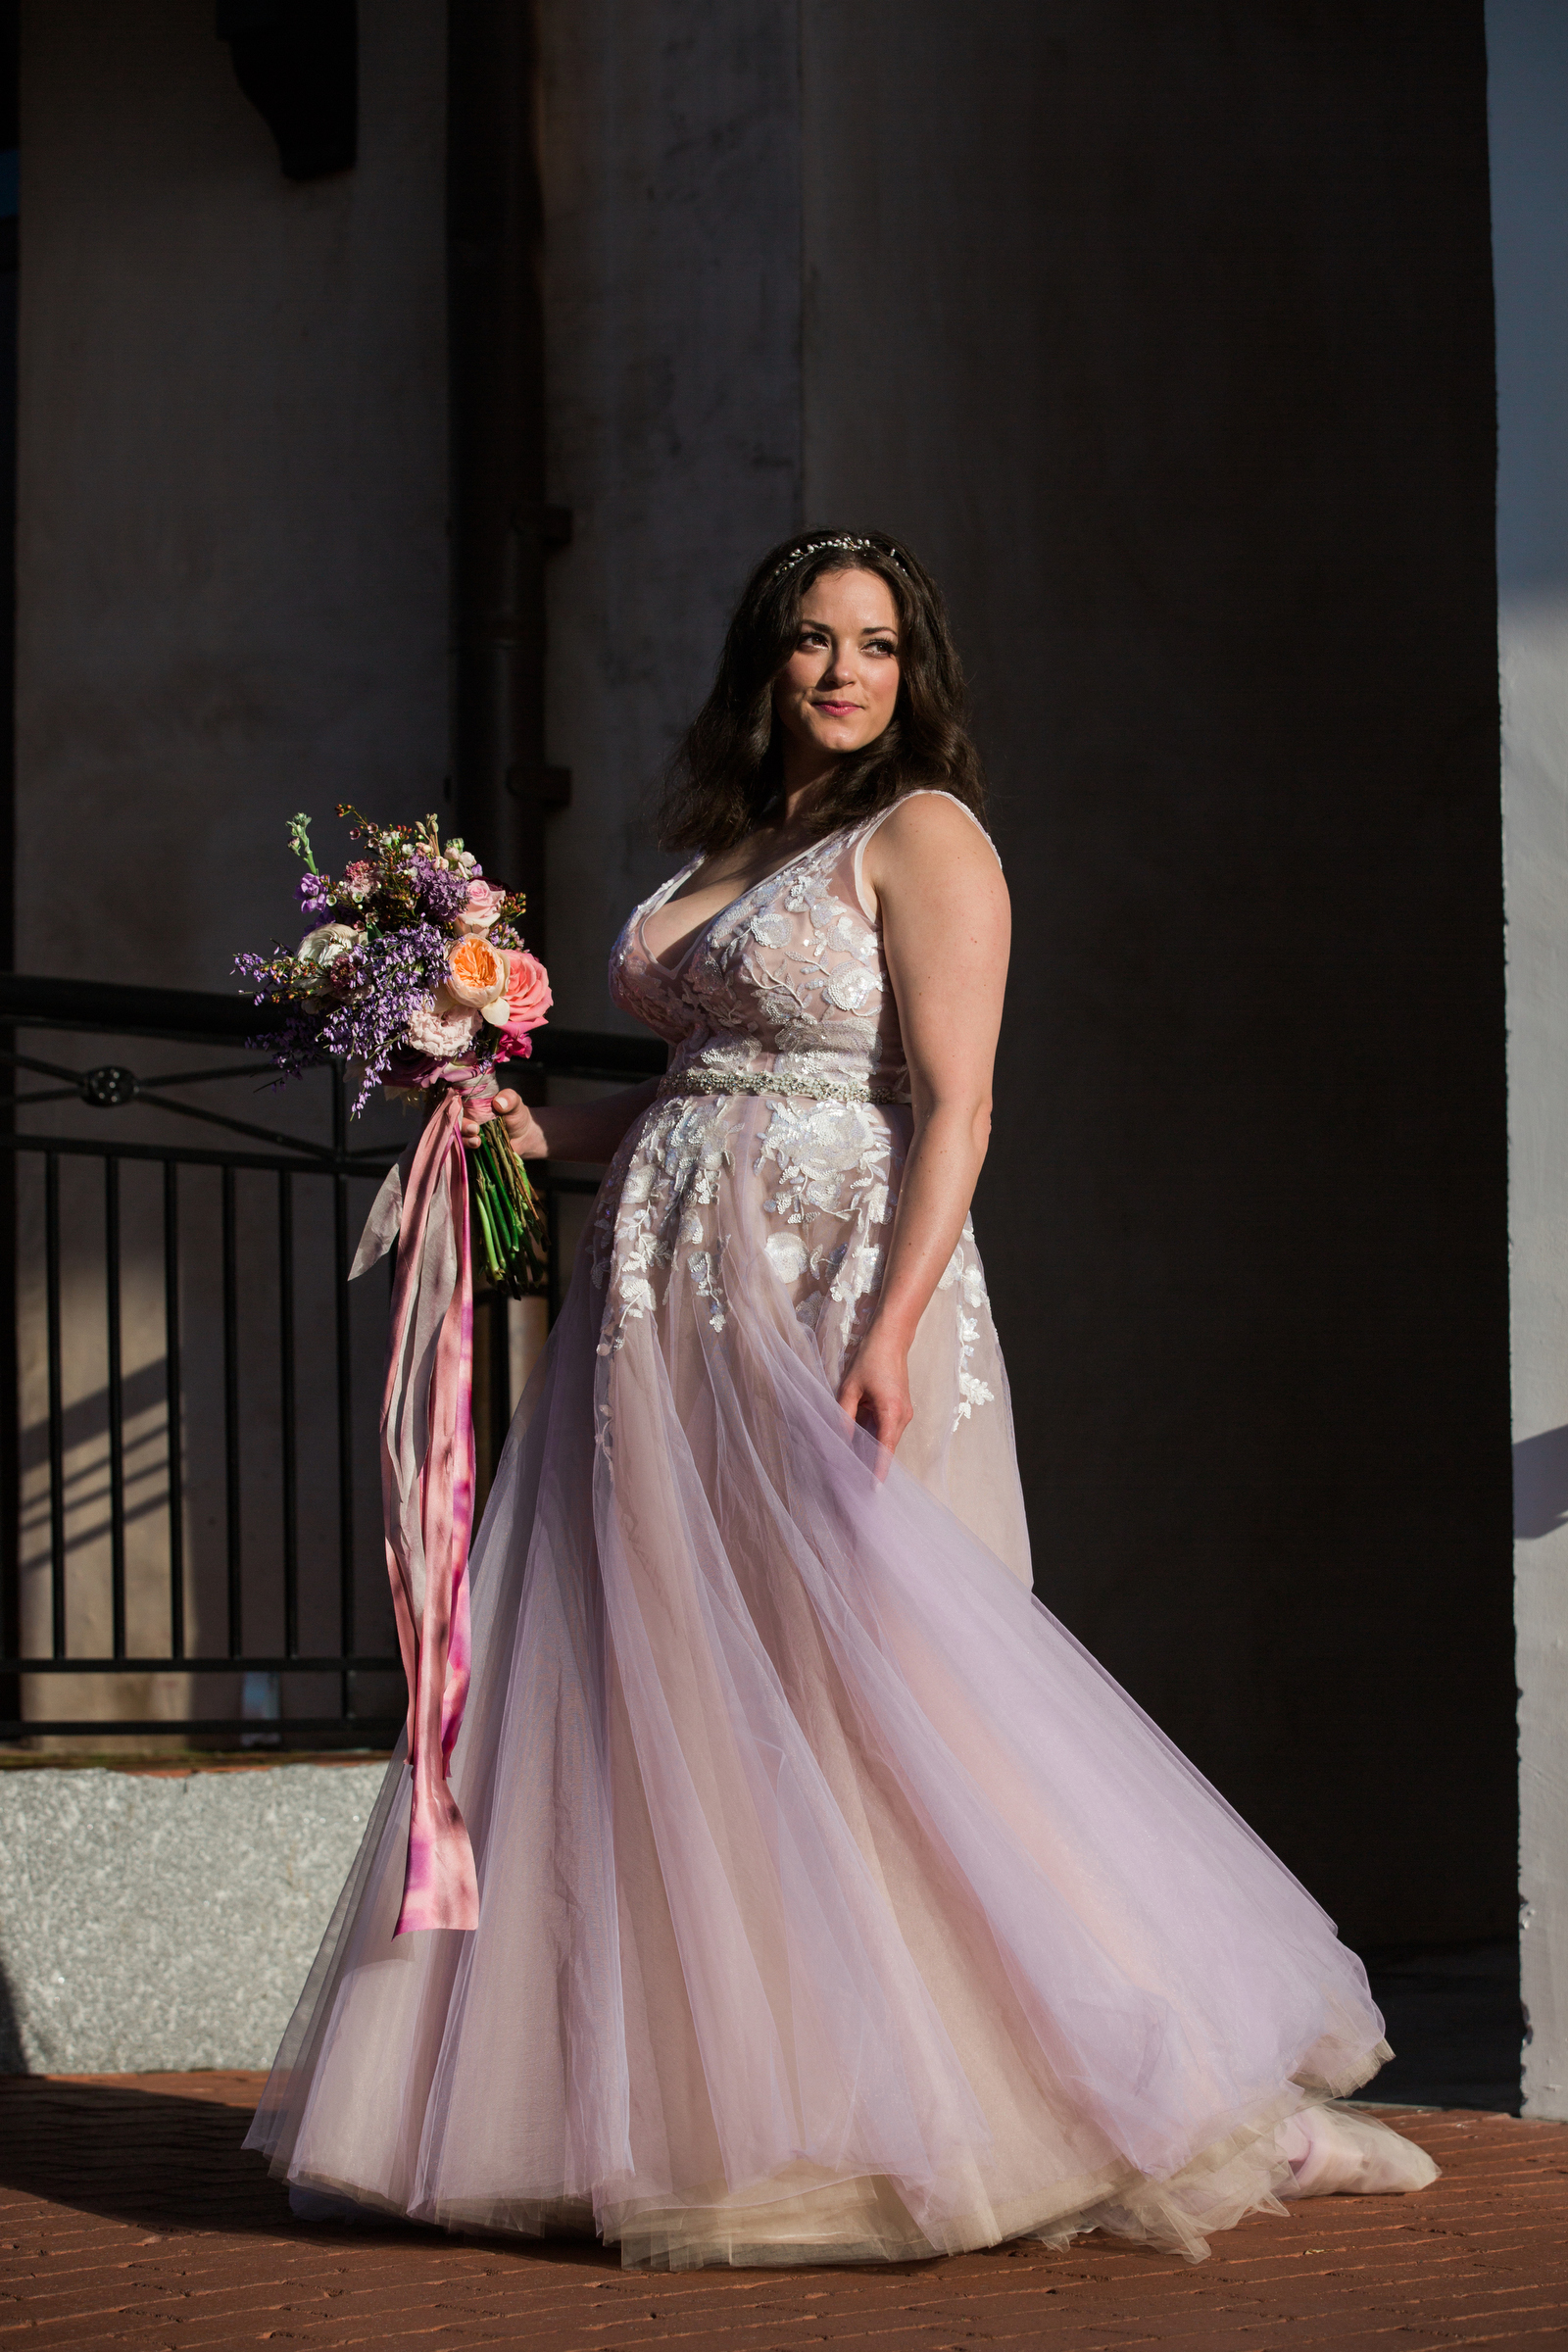 Bride wearing pink wedding dress with tulle skirt and lace applique bodice - photo by Modern Made